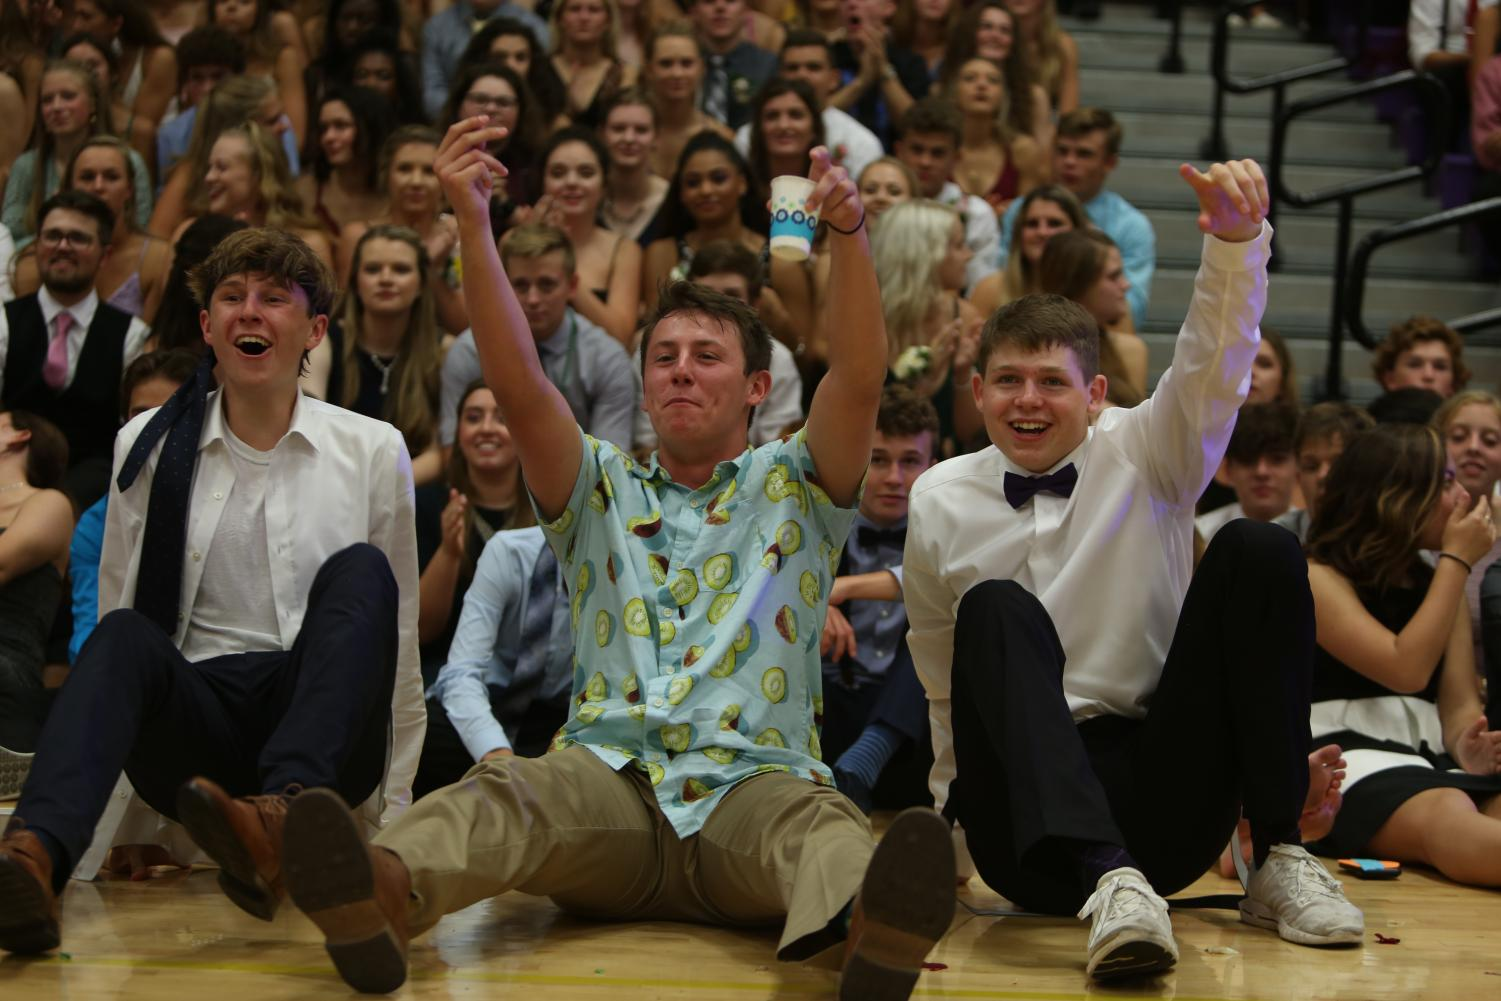 Students watch Homecoming Court during Homecoming 2019.